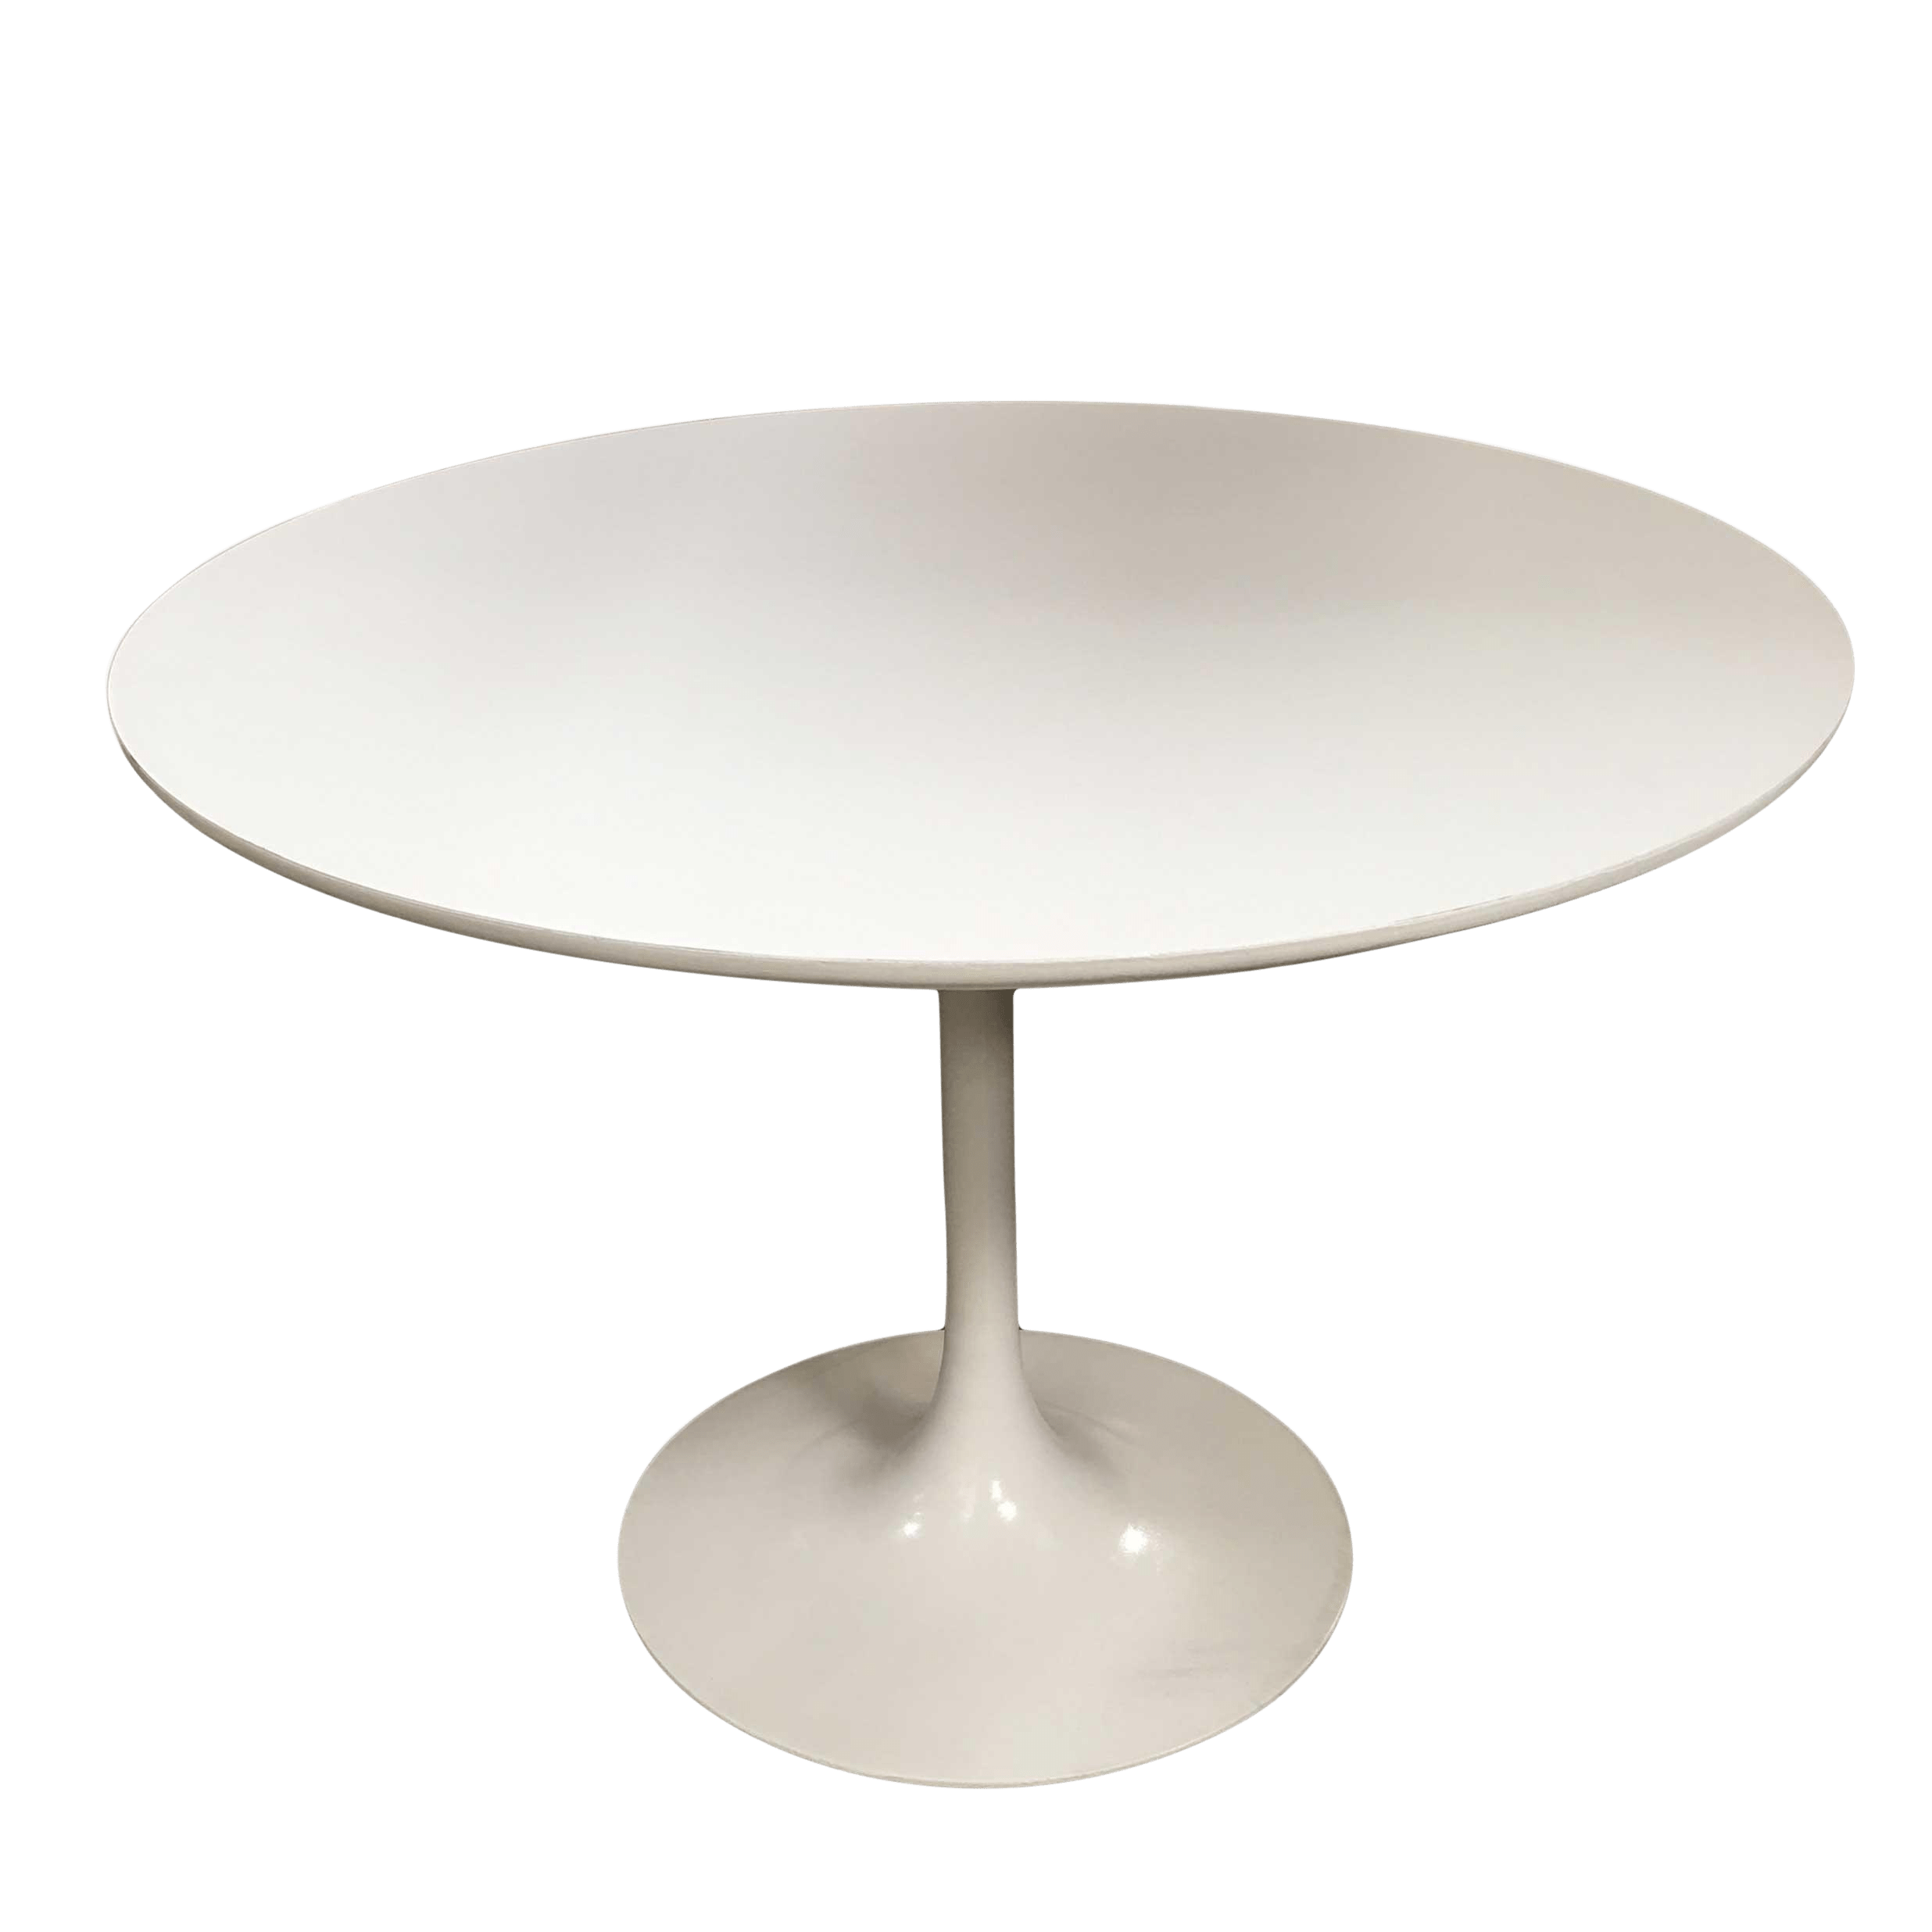 Saarinen Knoll Table Eero Saarinen